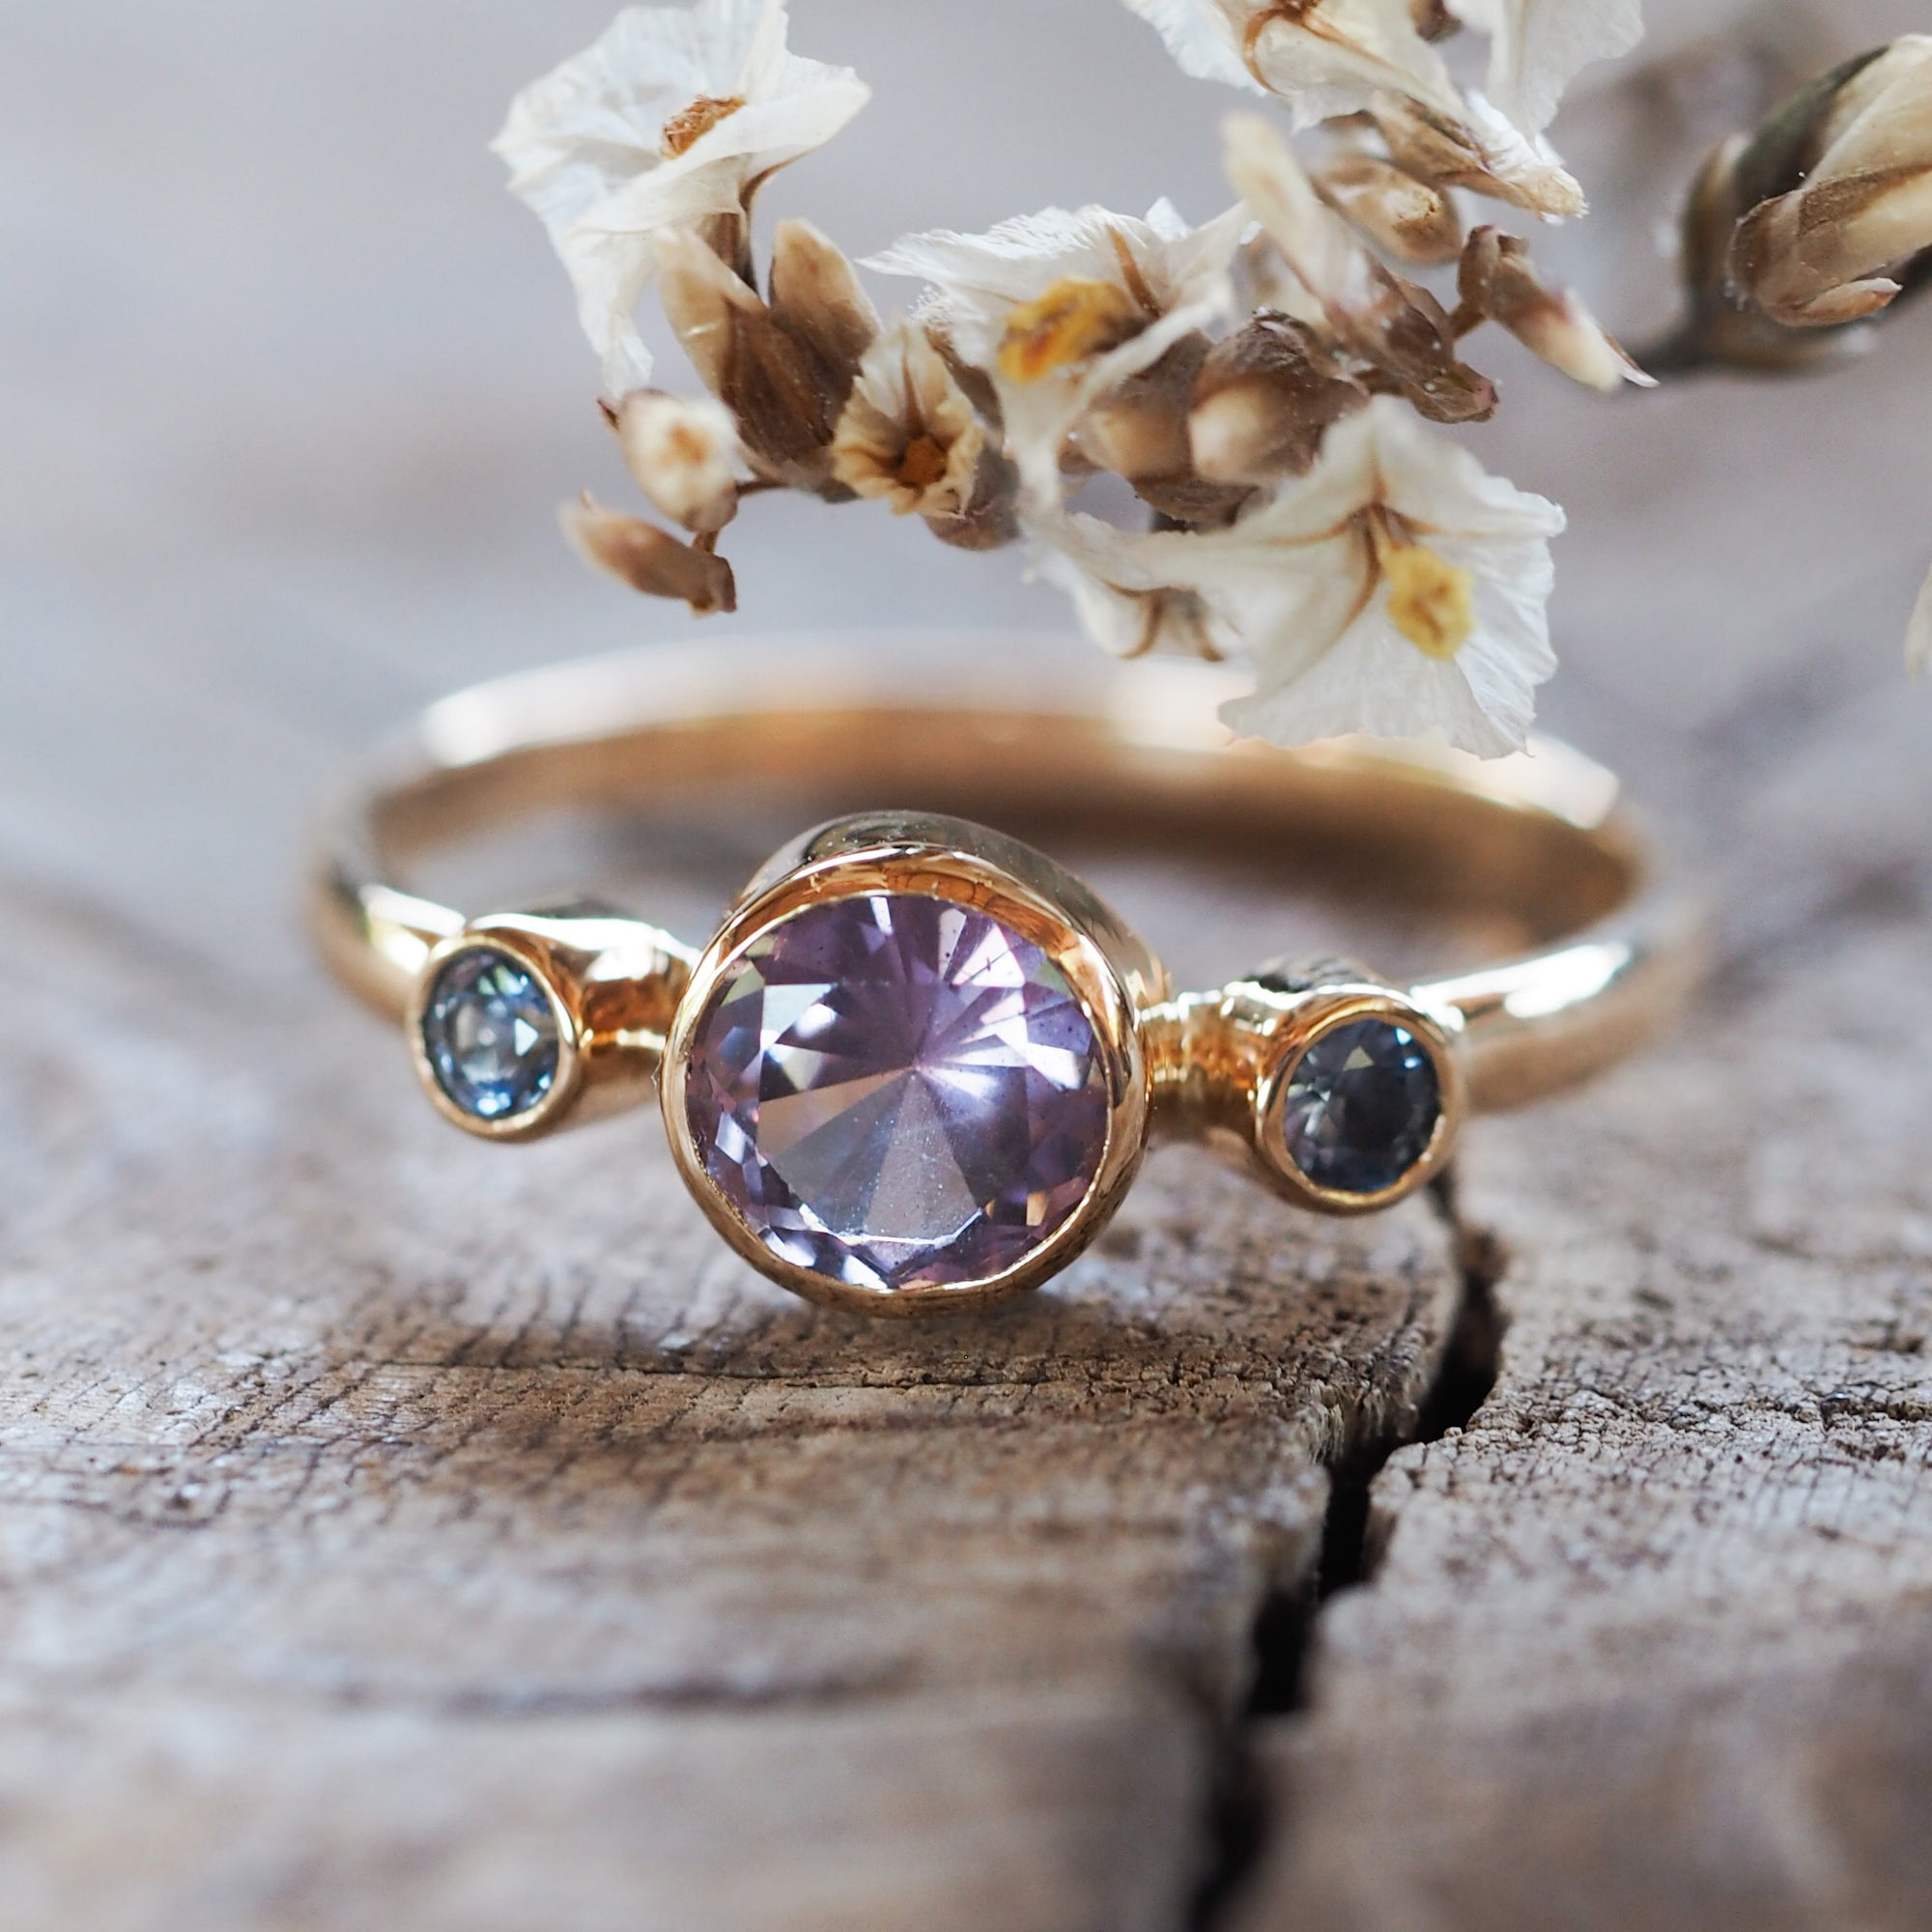 Custom Lavender Ceylon Sapphire Ring in Gold - Gardens of the Sun Jewelry